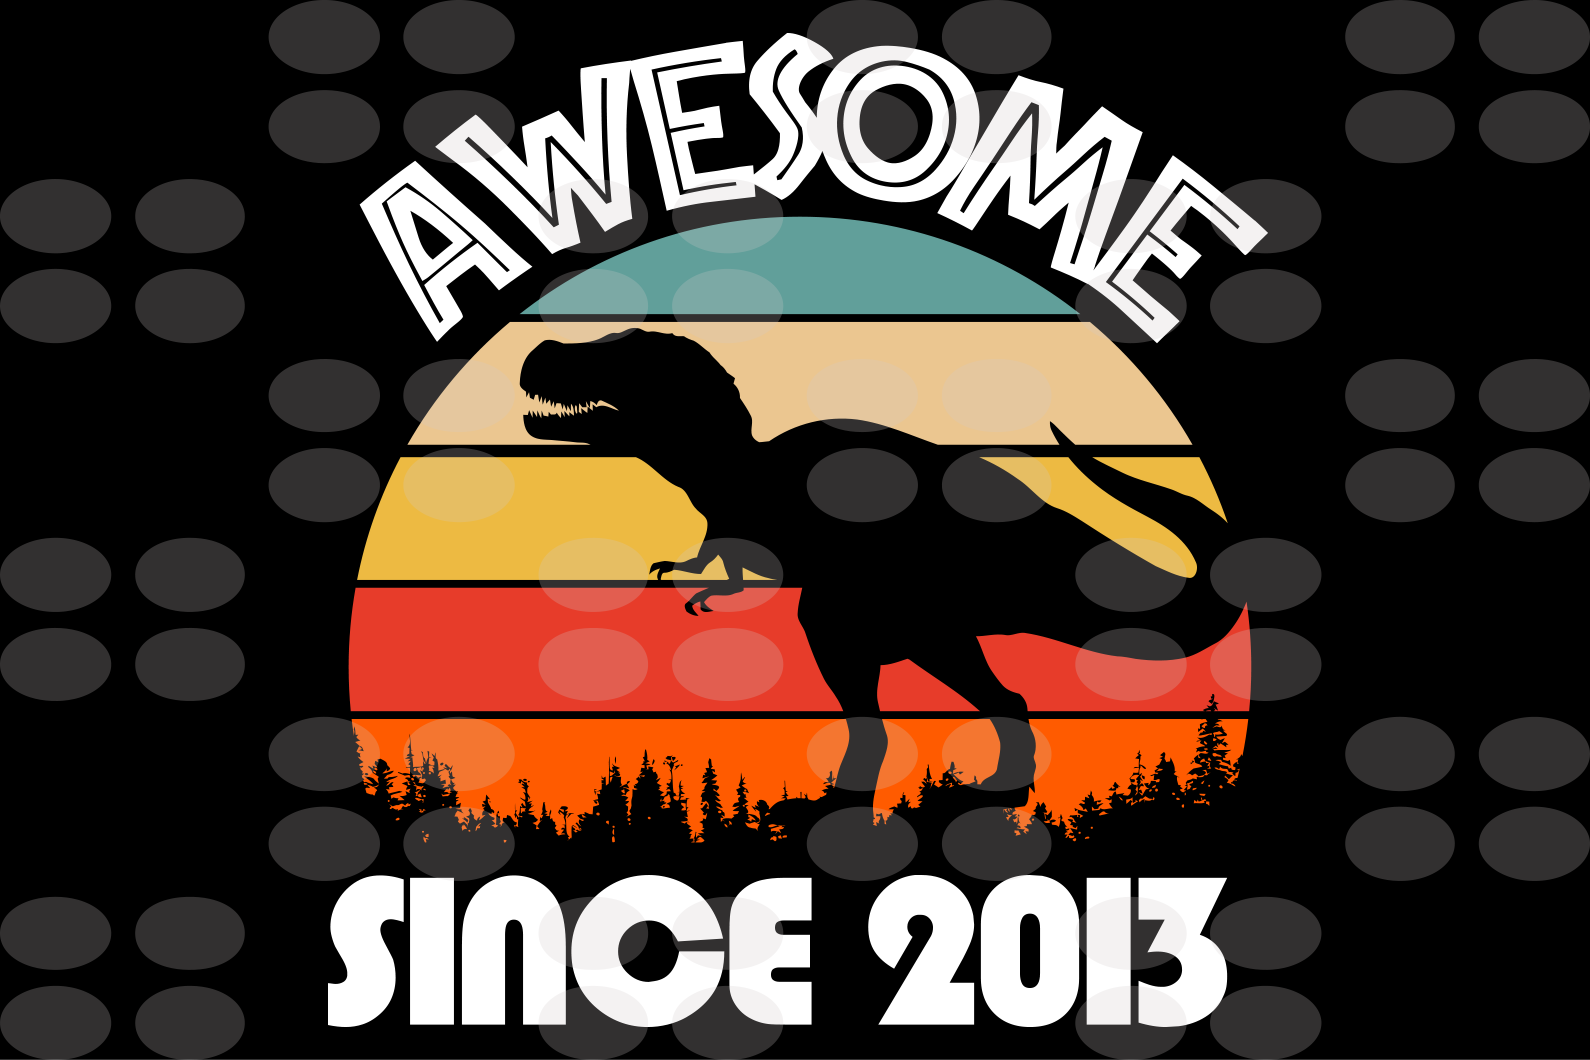 Awesome since 2013, 2013 svg, born in 2014, 6th birthday shirt, dinosaur svg, dinosaur print, t-rex svg, t-rex shirt, retro vintage shirt,svg cut files, svg clipart, silhouette svg, cricut svg files, decal and vinyl,